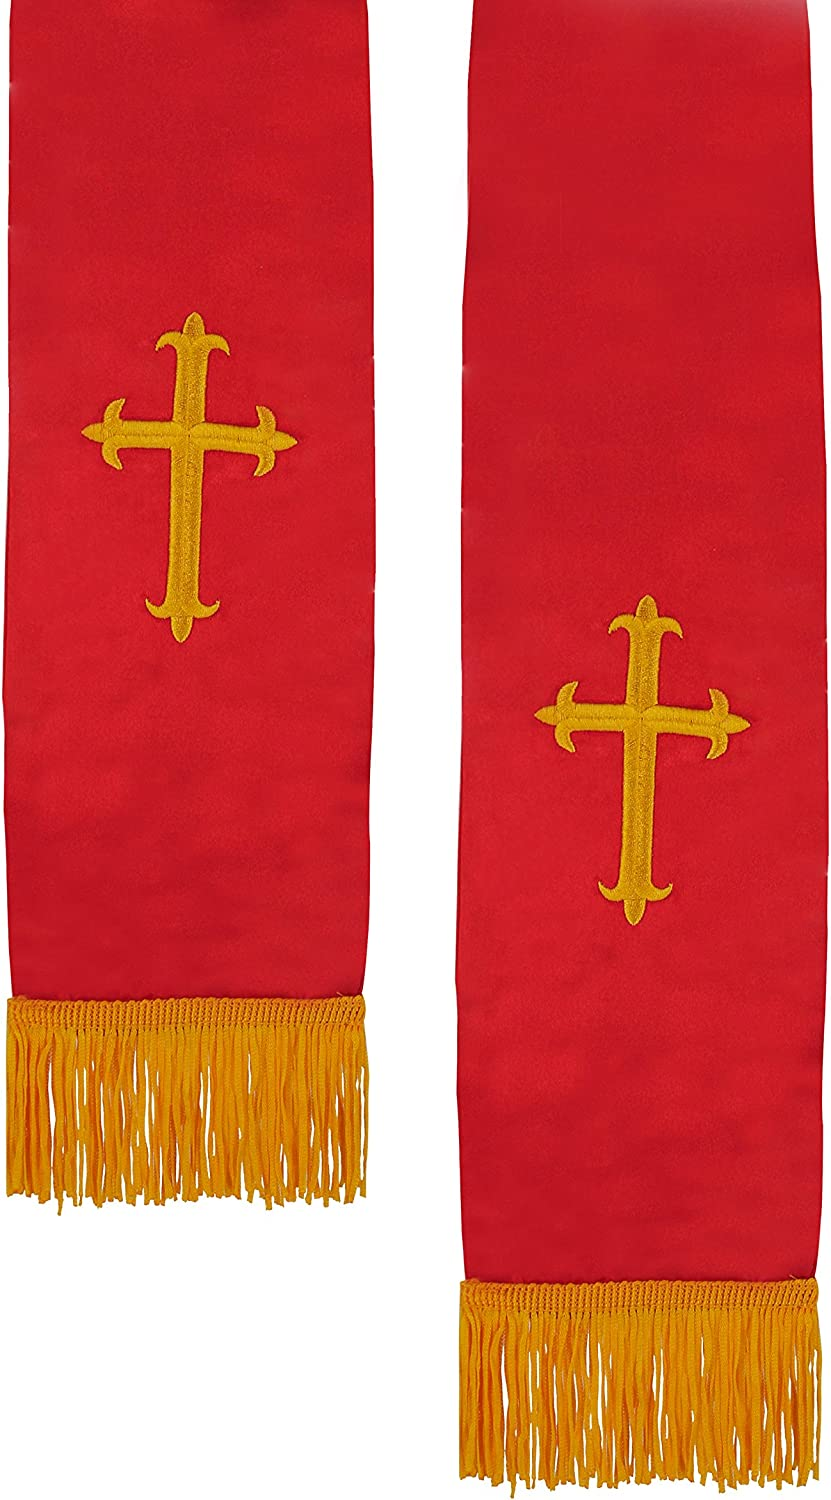 IvyRobes Unisex Adults Satin Church Clergy Stole with Gold Embroidery Cross Tassel 229cm